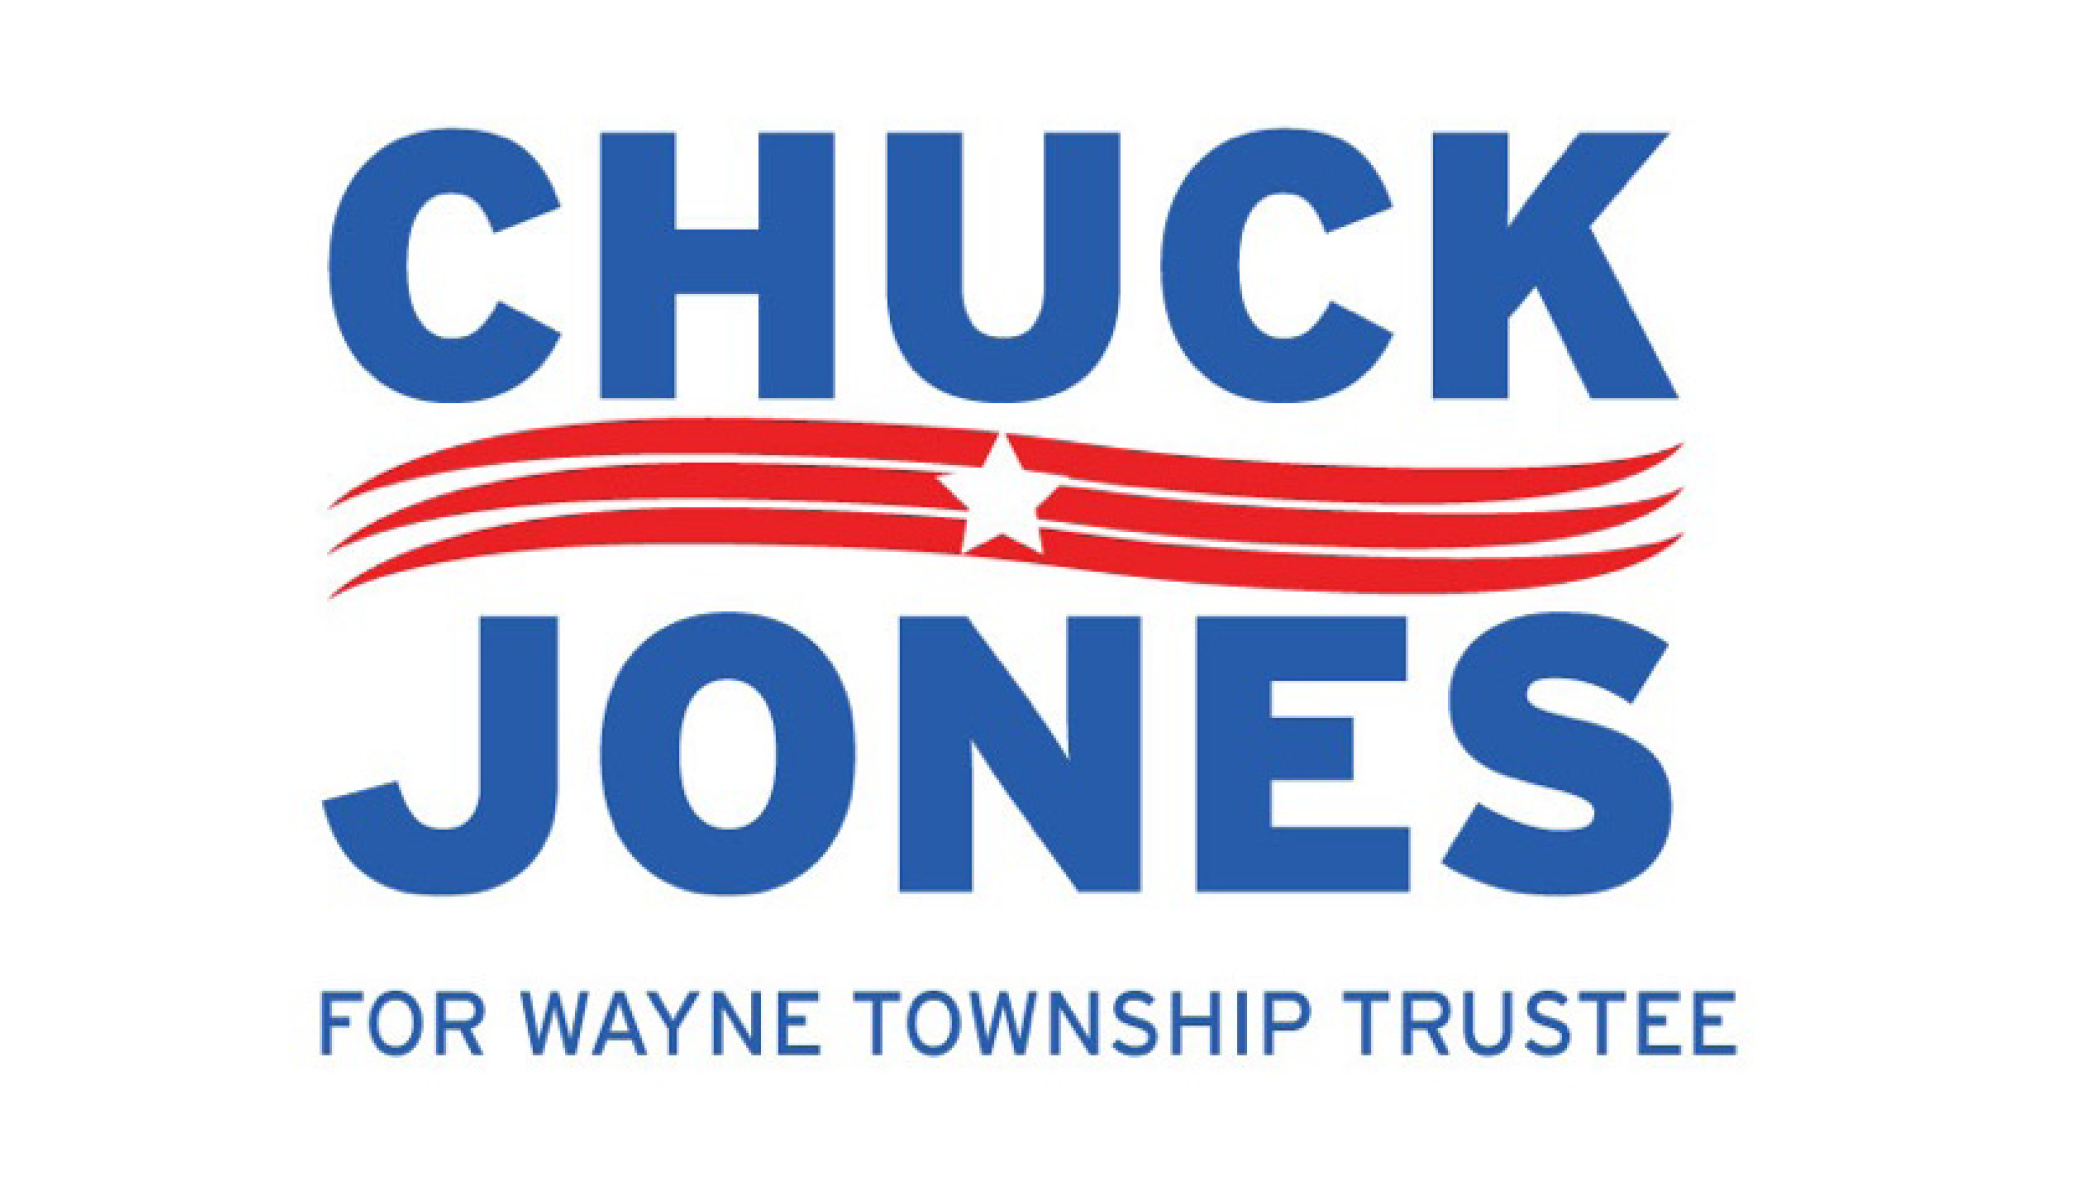 Chuck Jones for Trustee